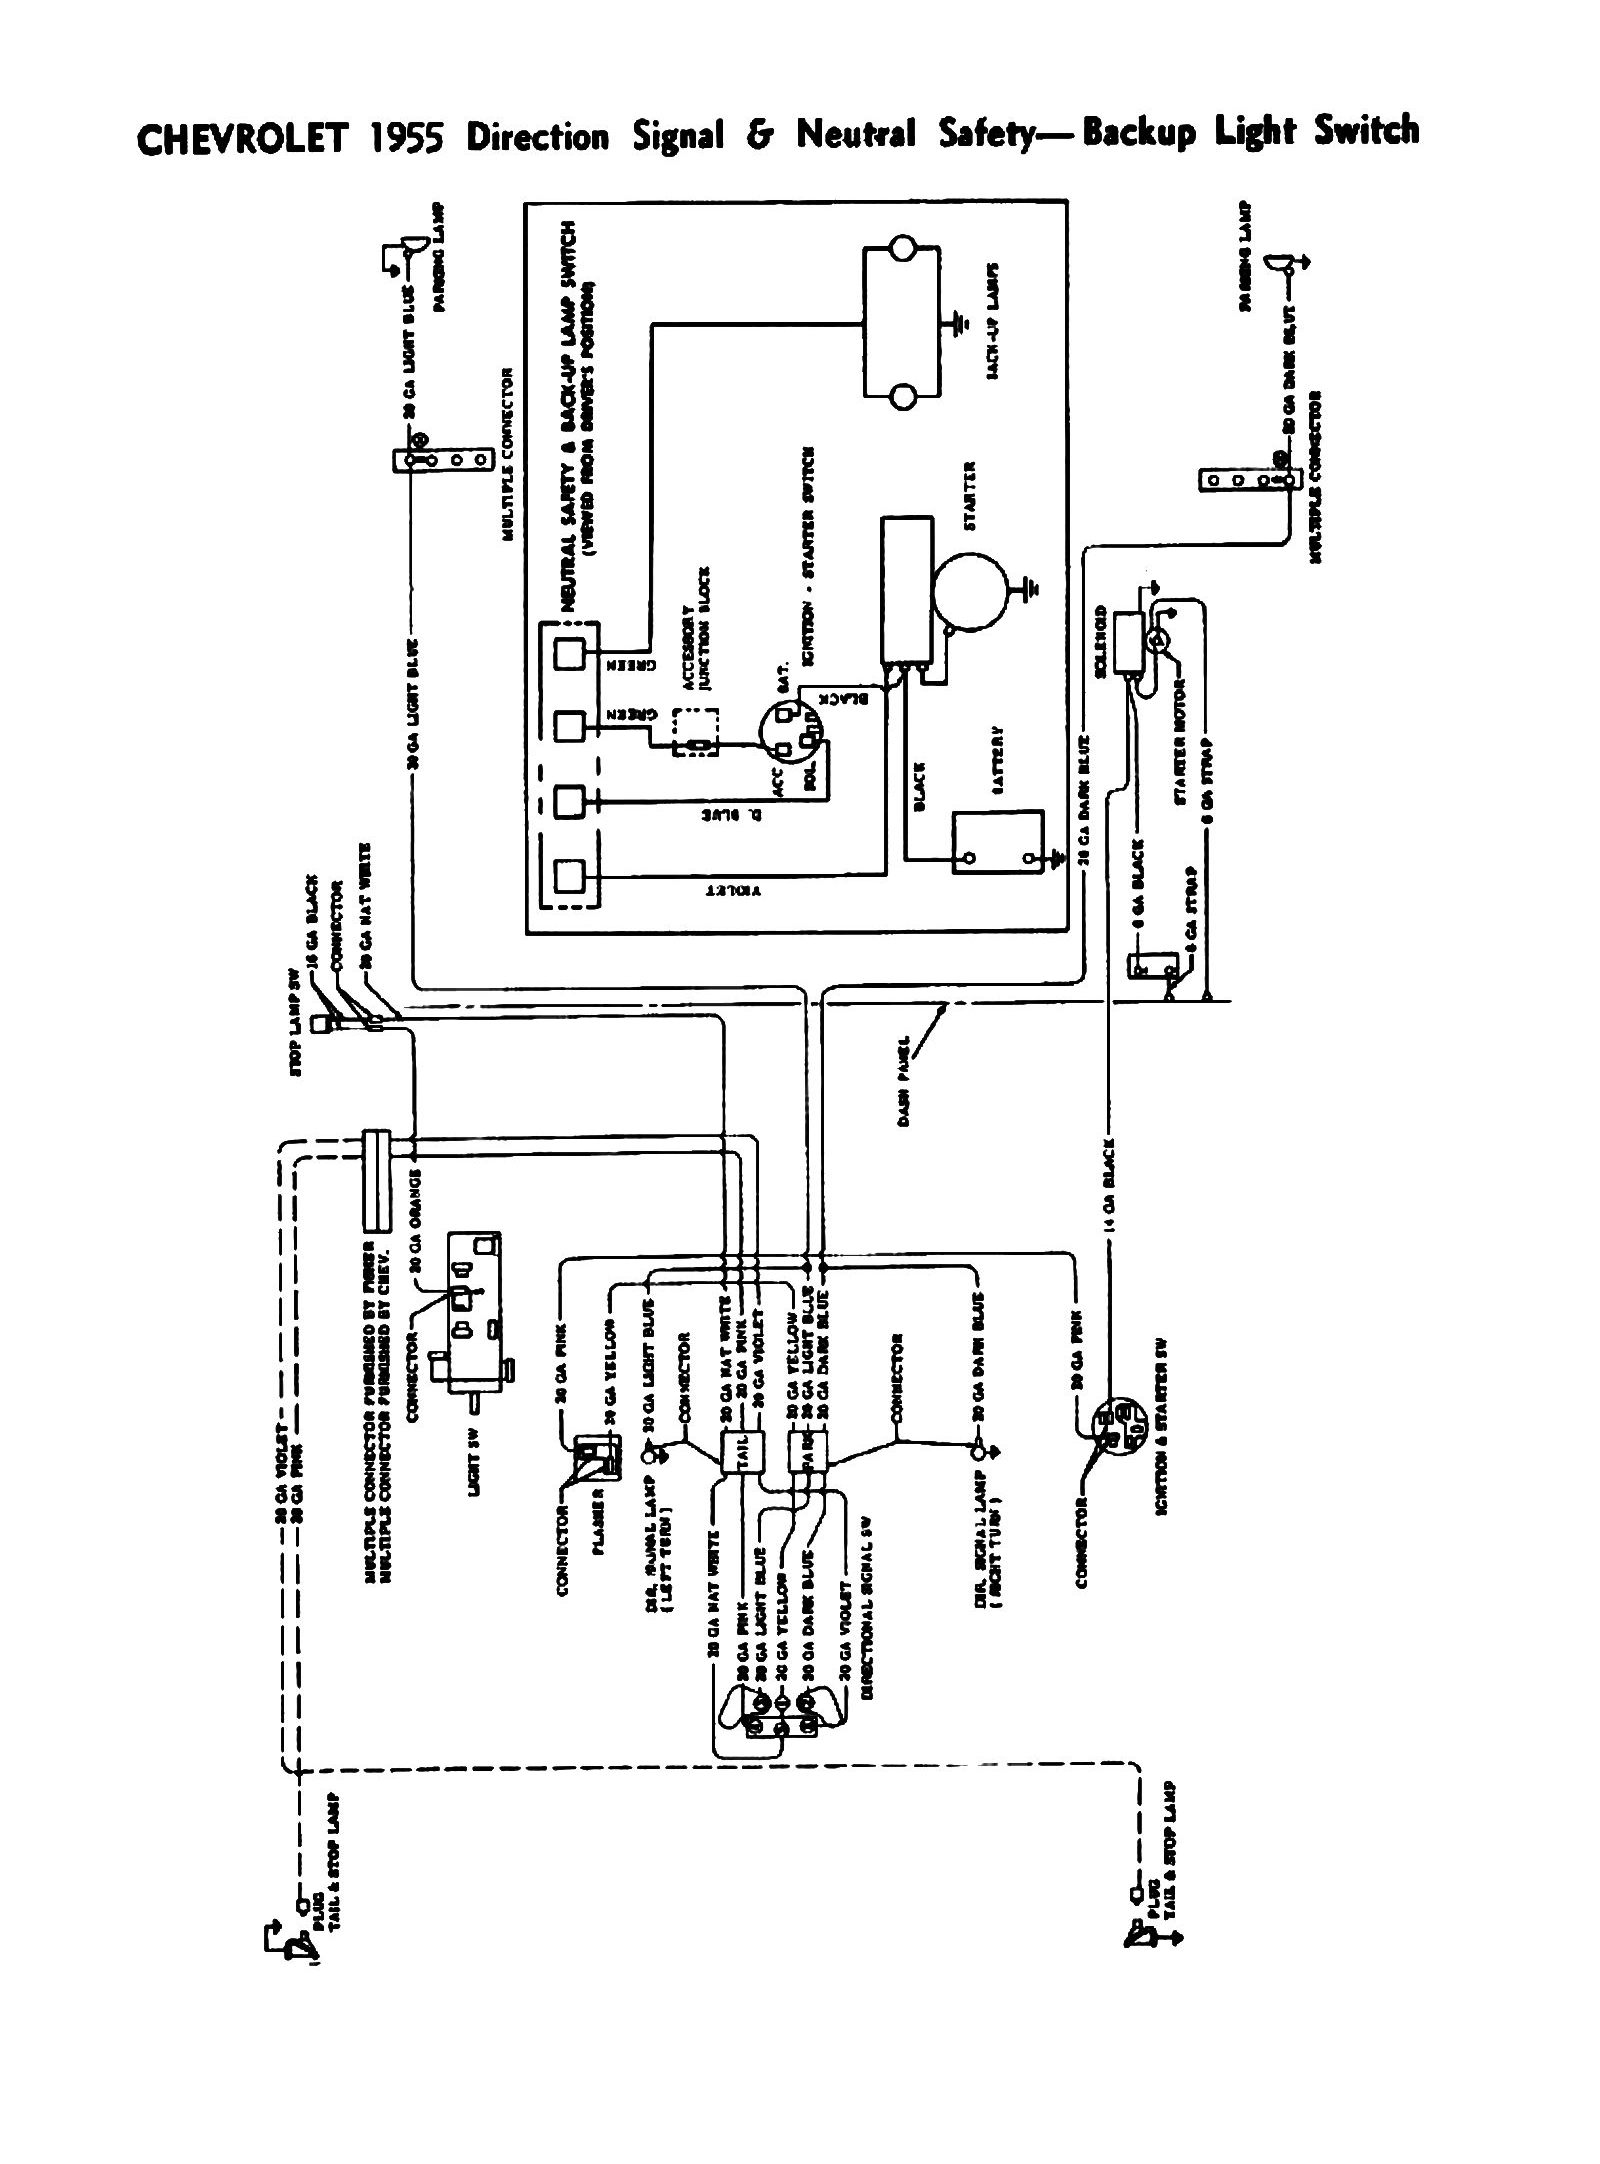 55signal 2001 corvette wiring diagram c5 corvette stereo wiring diagram  at fashall.co